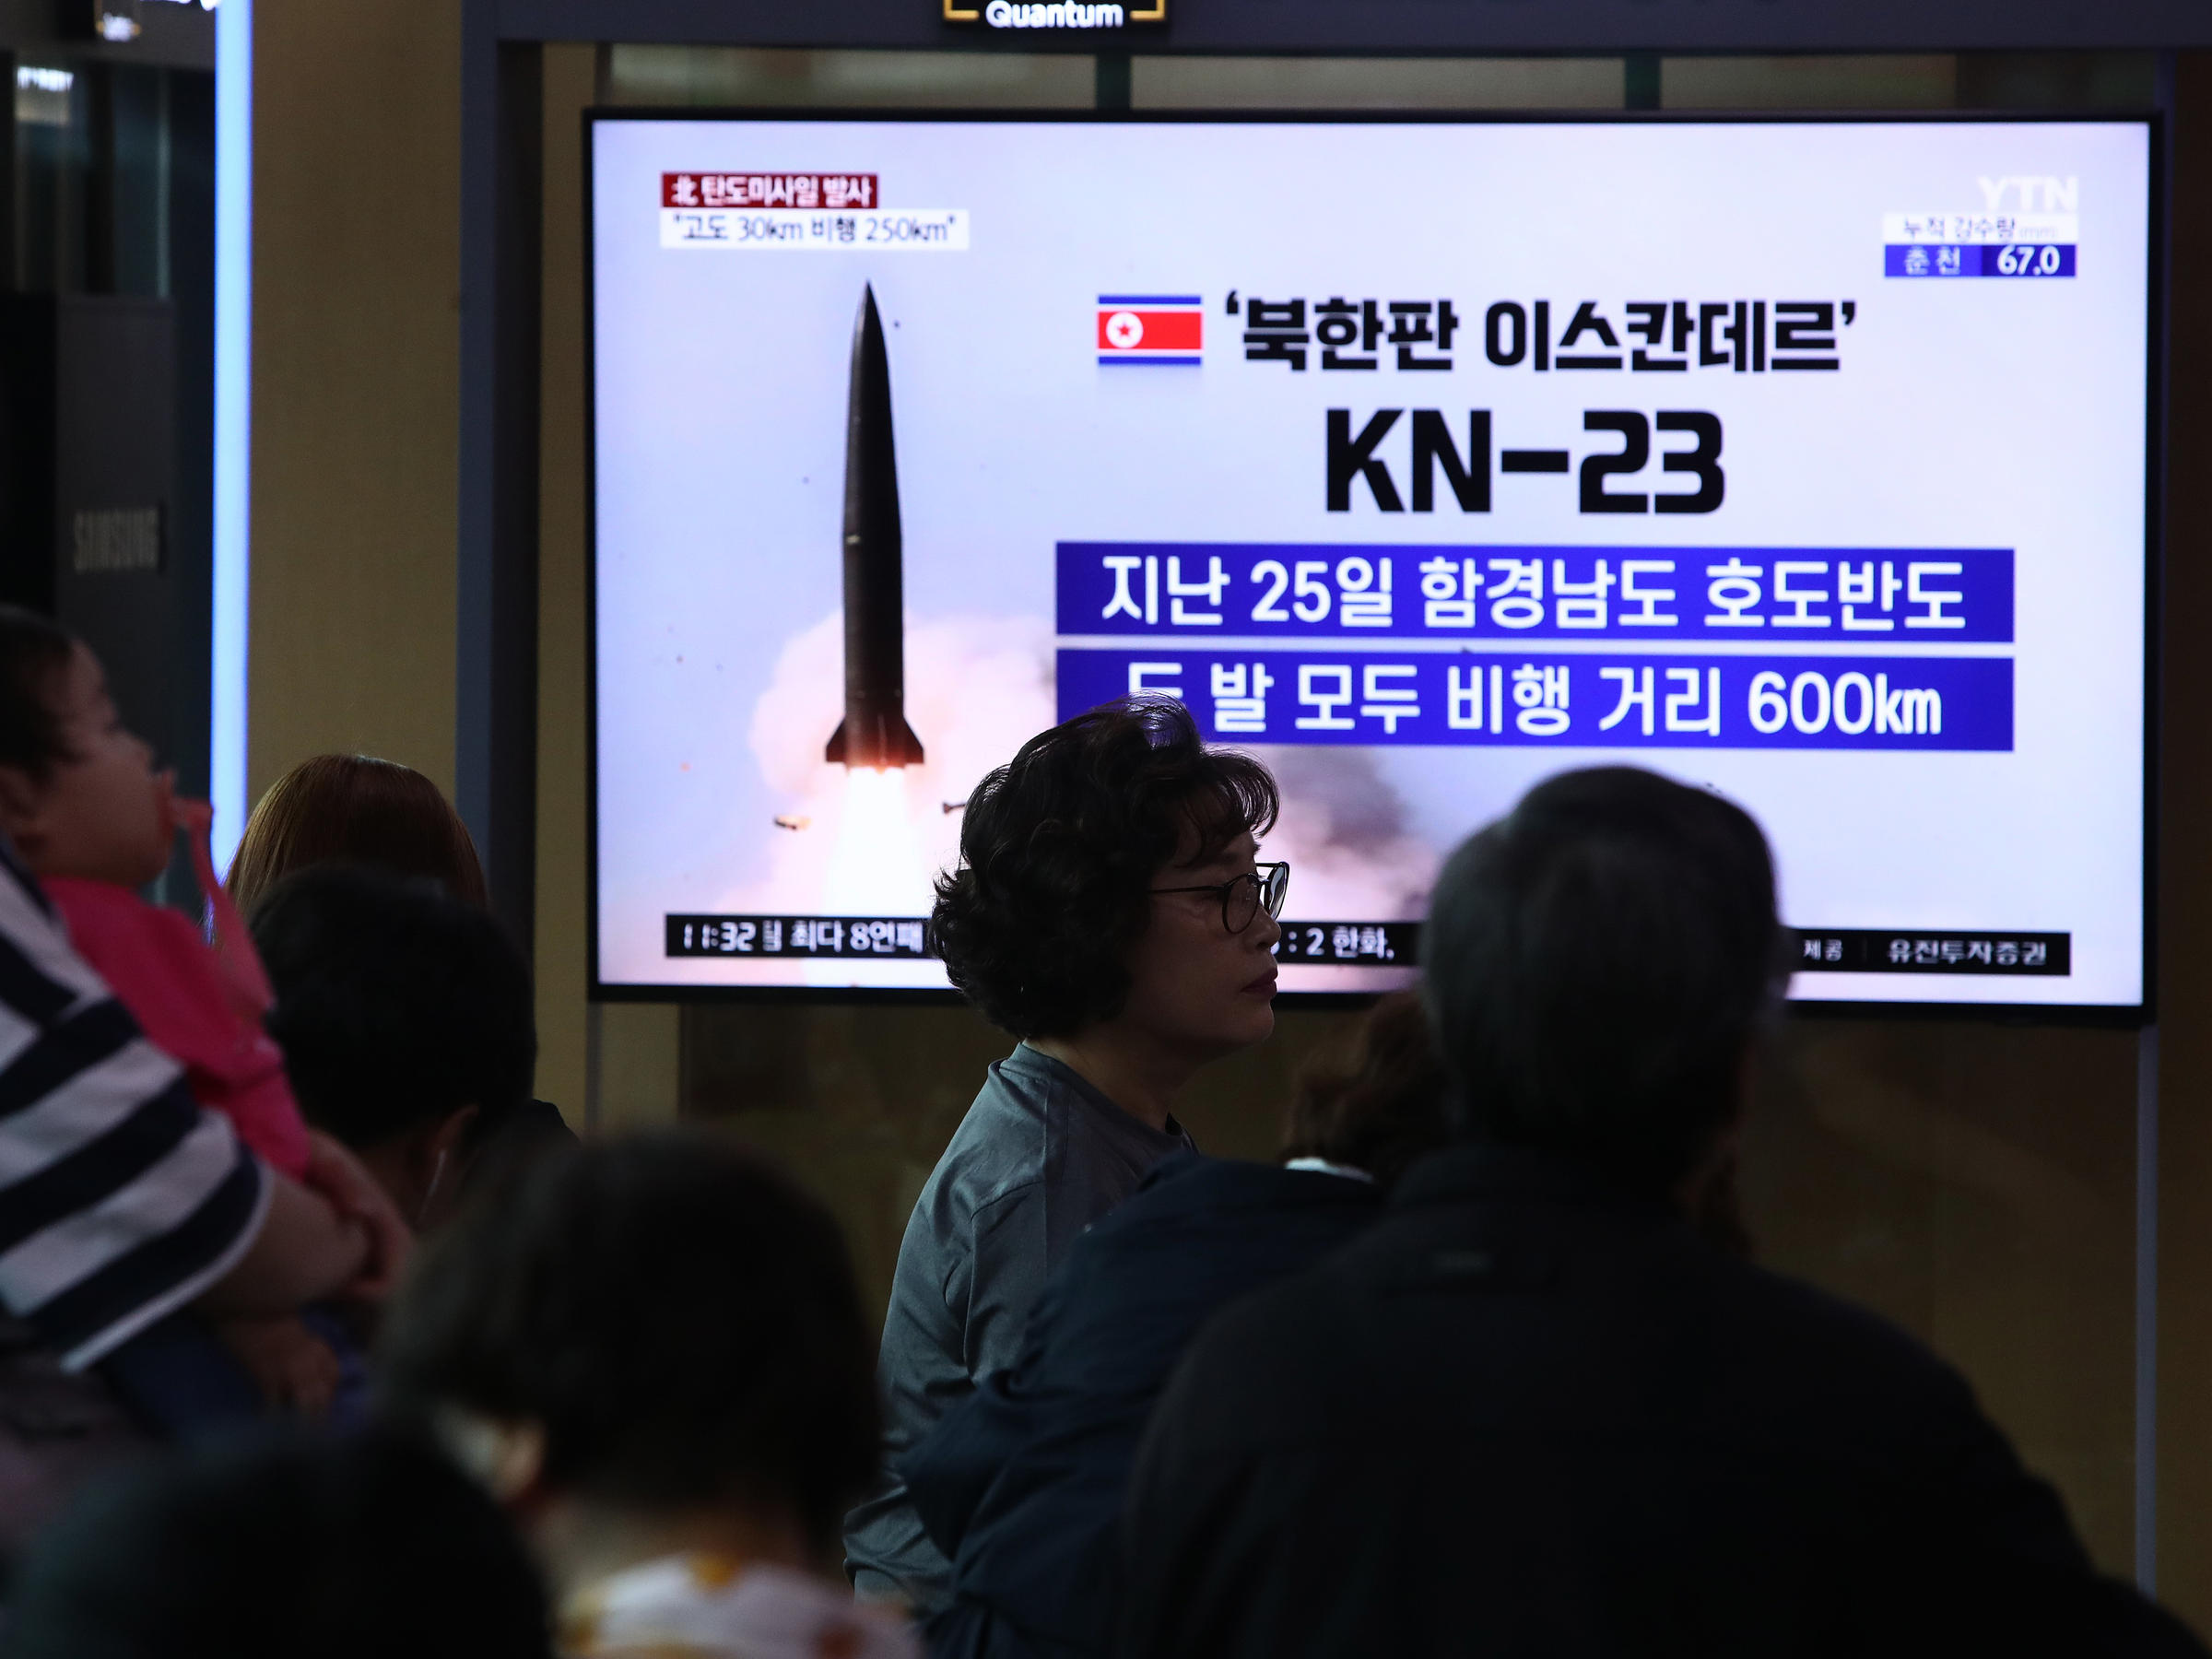 North Korea Conducts 3rd Missile Test Since Last Week Amid Stalled